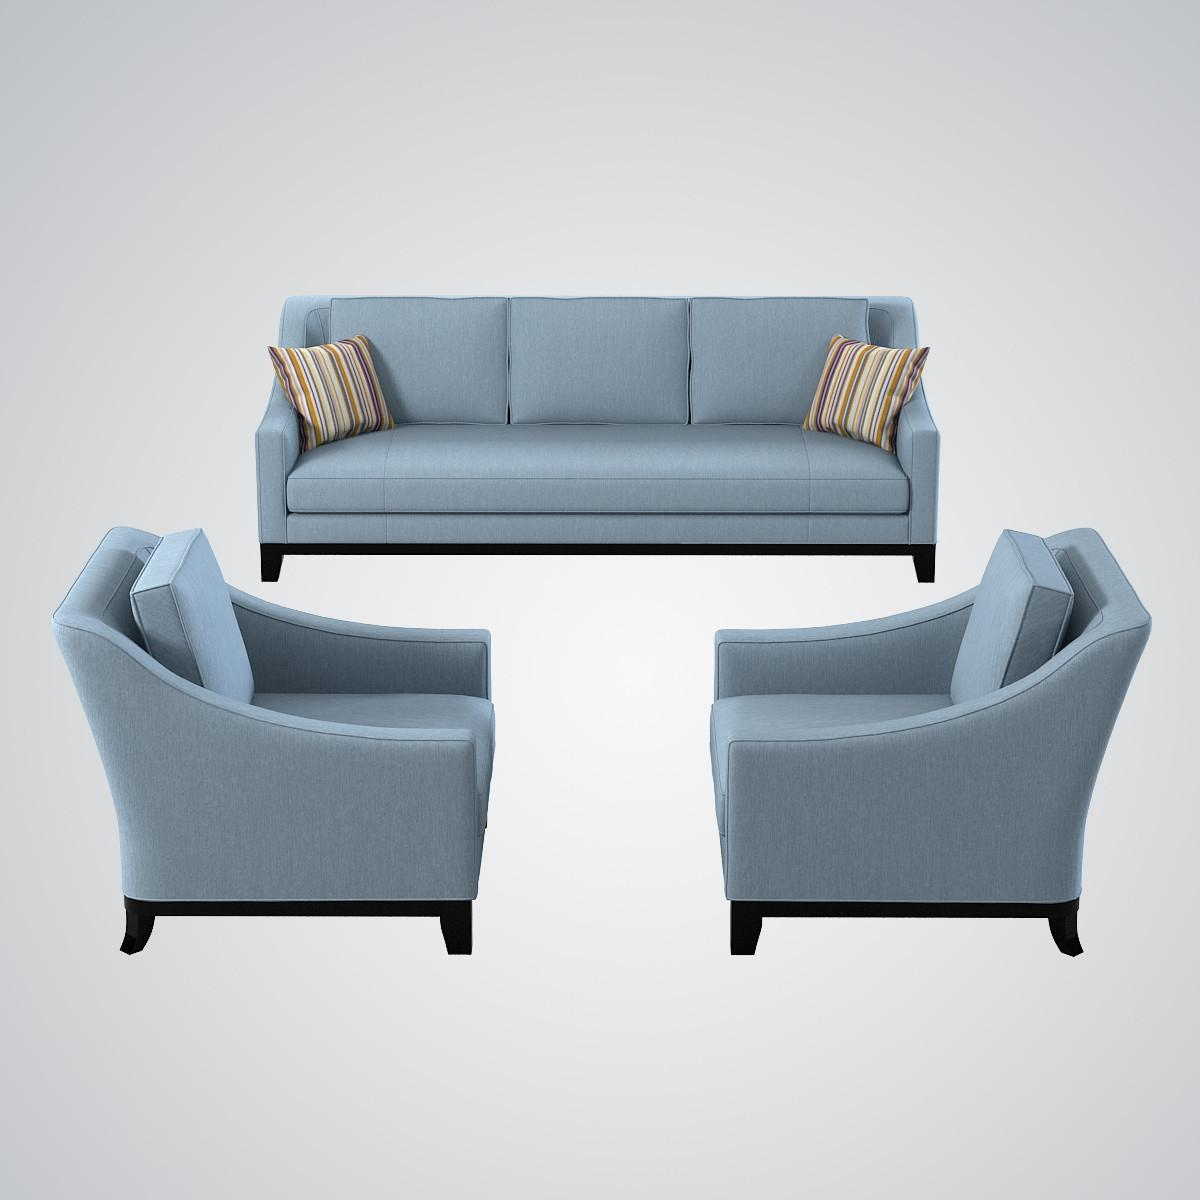 Model Baker Neue Sofa Chair Throughout Sofa And Chair Set (Image 13 of 20)